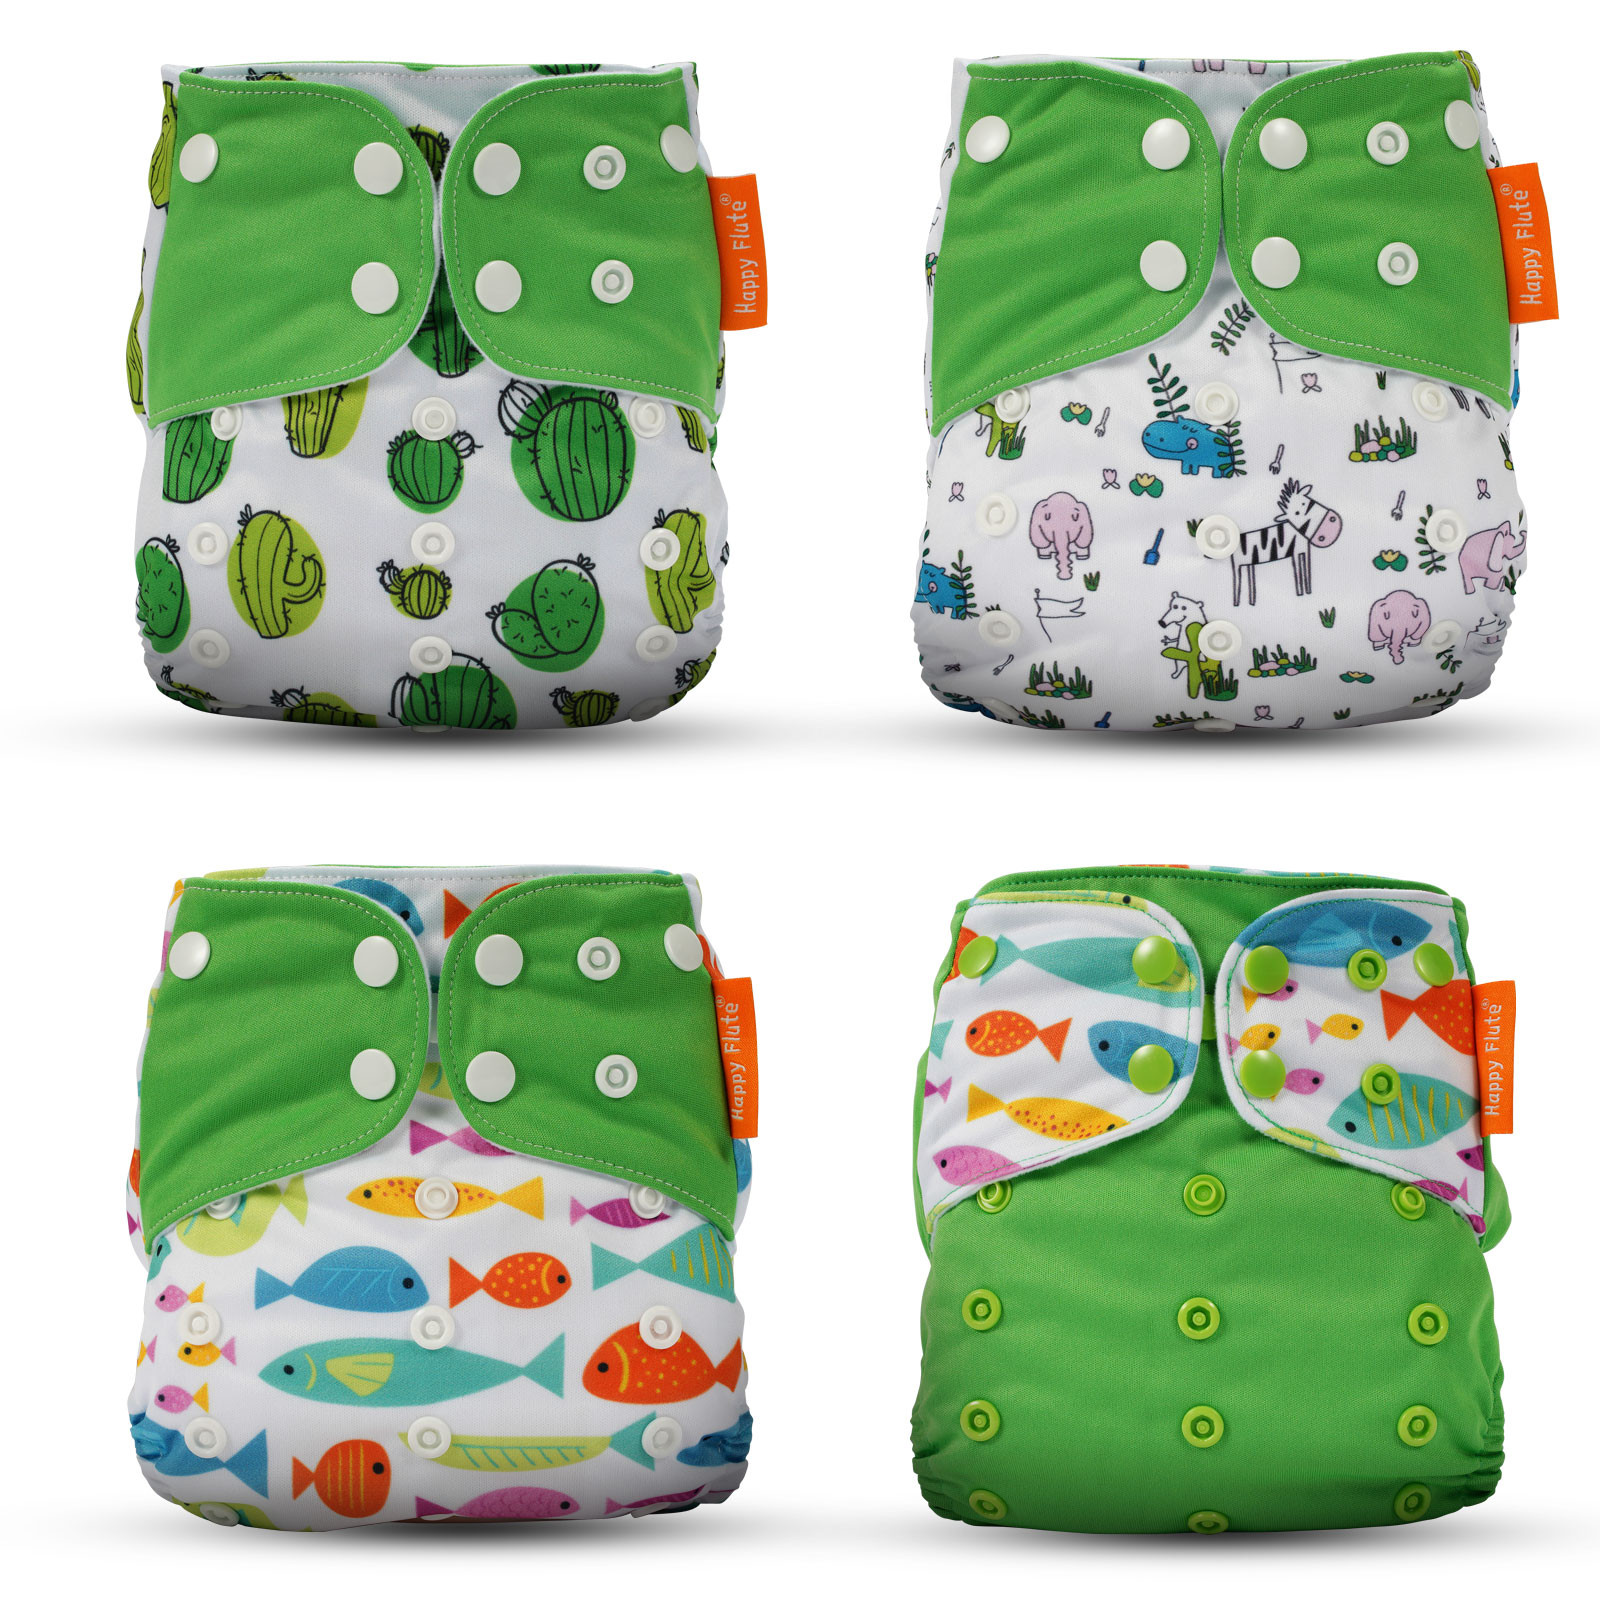 MENGS®  Baby Cloth Diapers 4 Pack Adjustable Washable and Reusable Pocket Diapers for Baby Girls